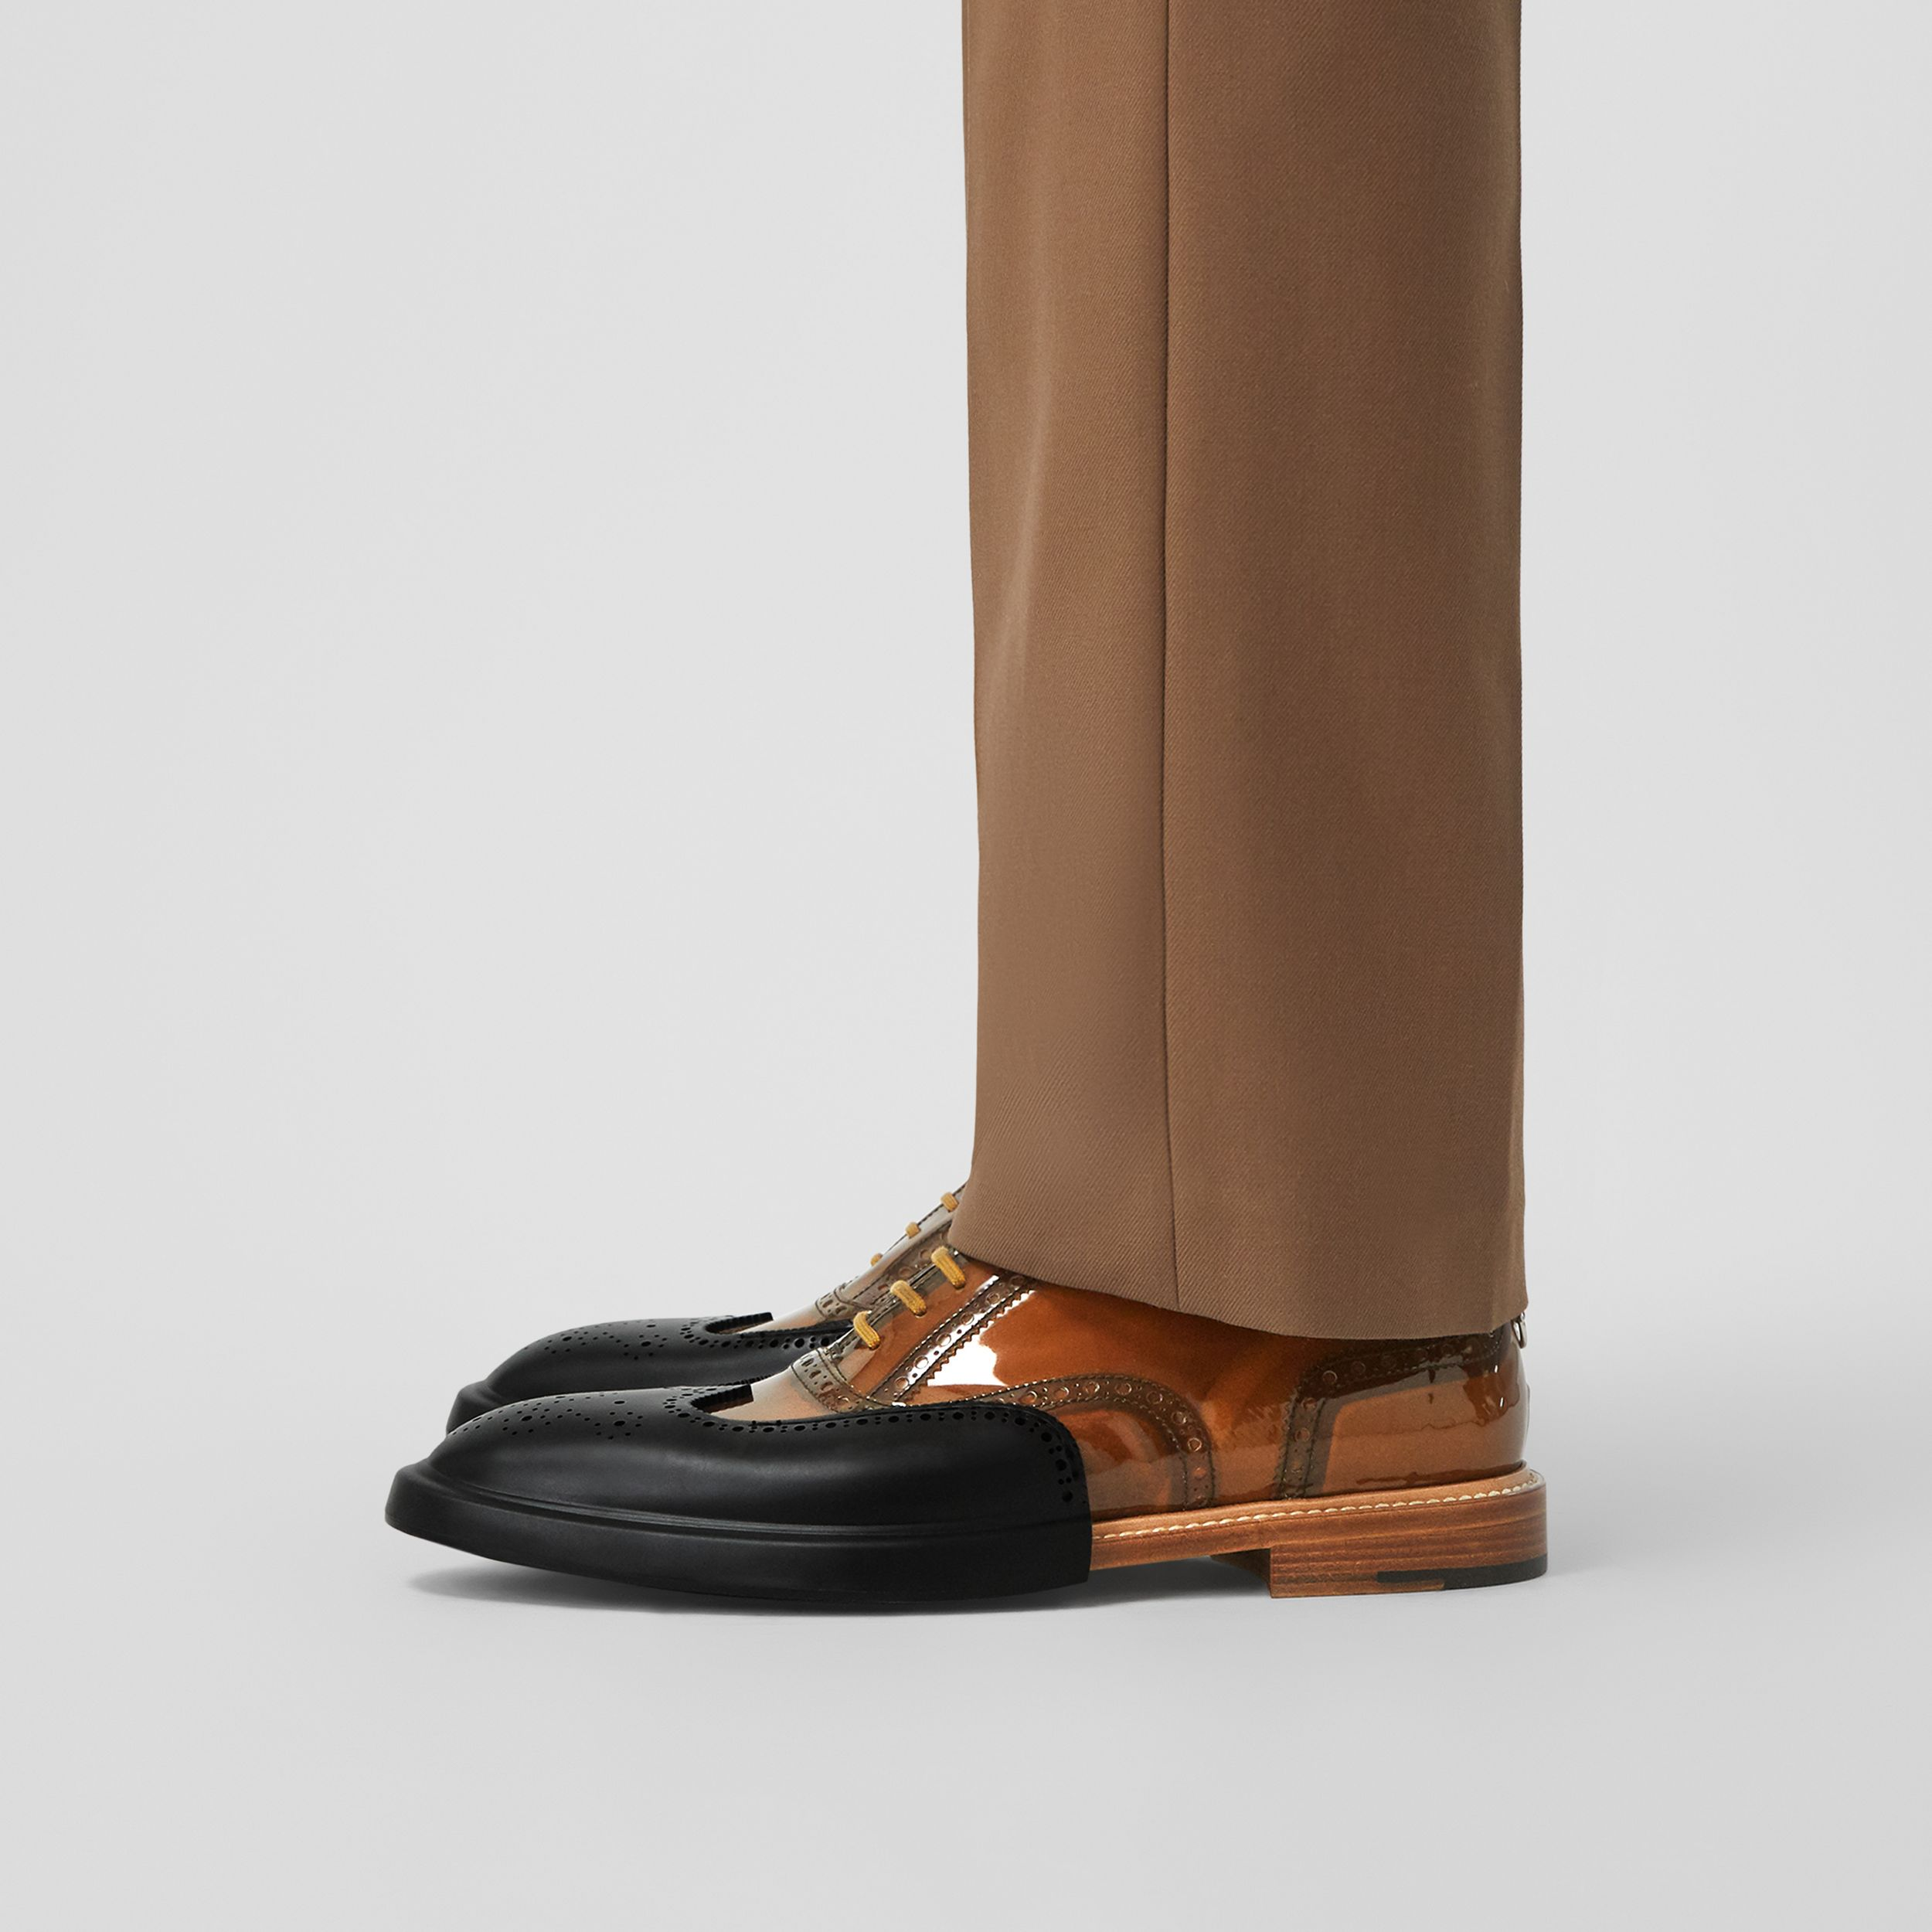 Toe Cap Detail Vinyl and Leather Oxford Brogues in Brown/black - Men | Burberry - 3